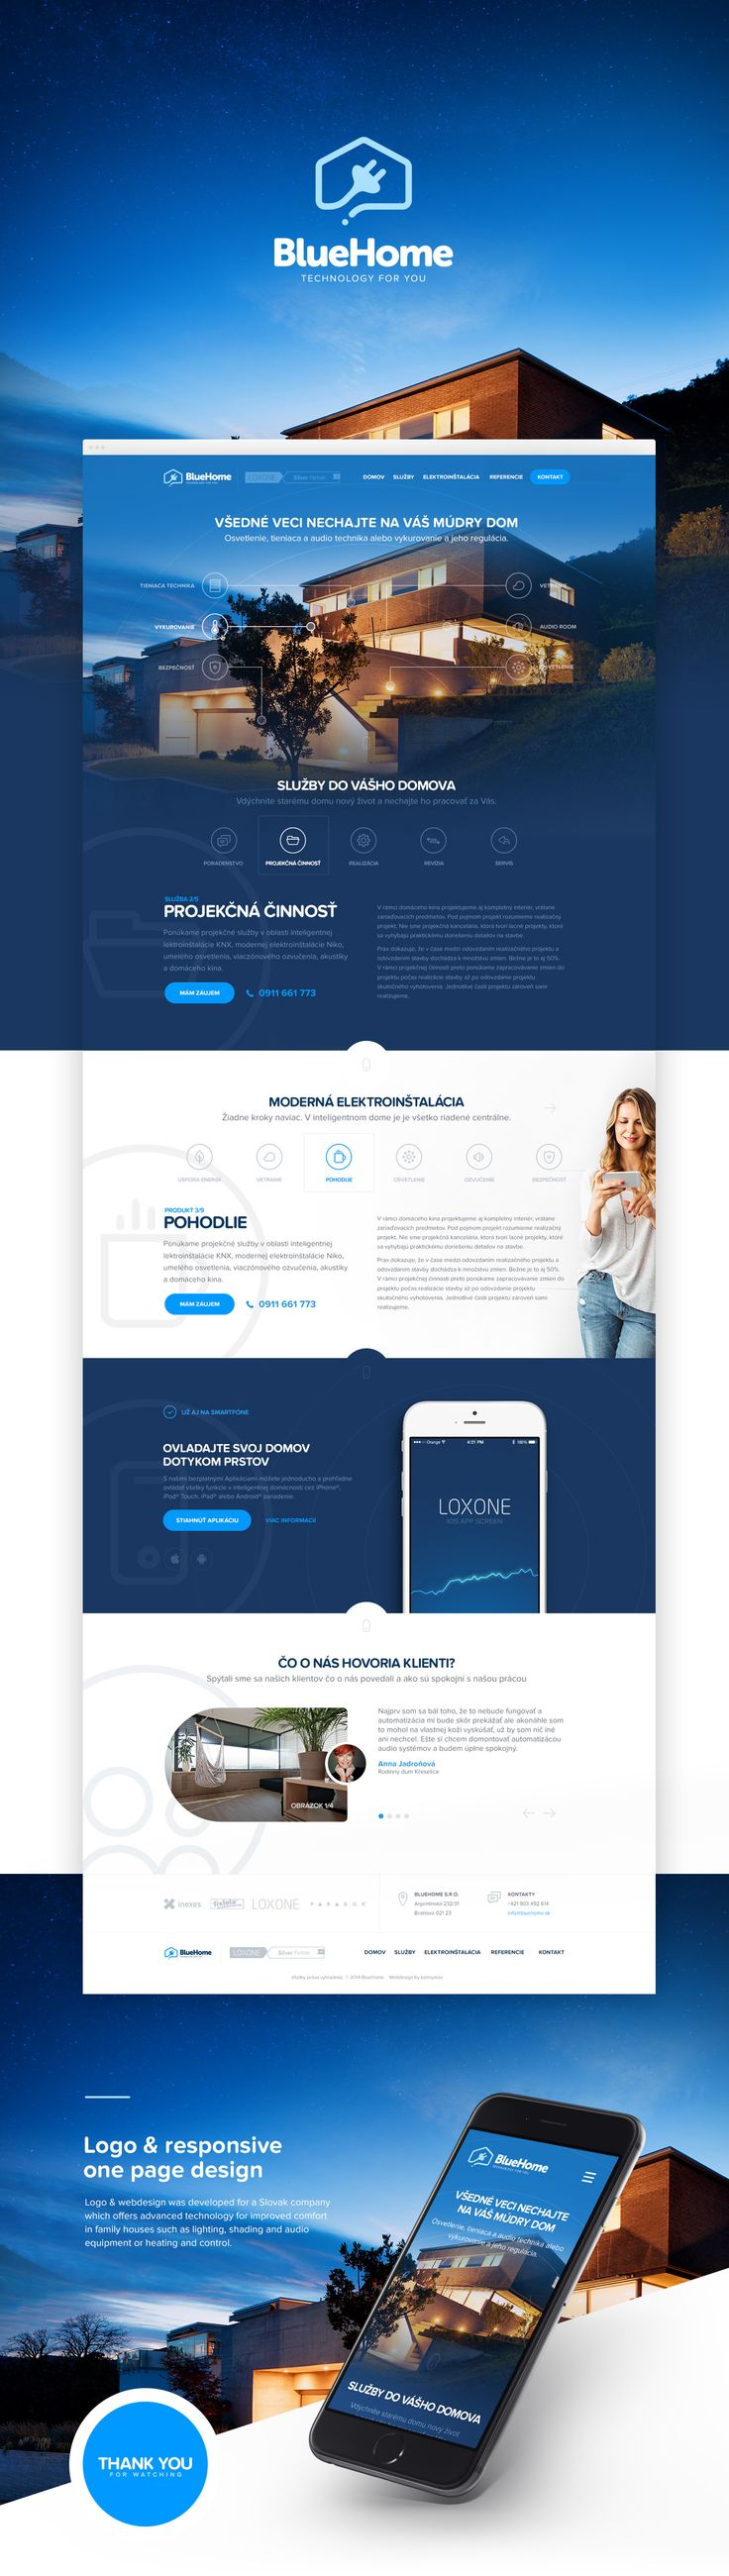 BlueHome on Behance